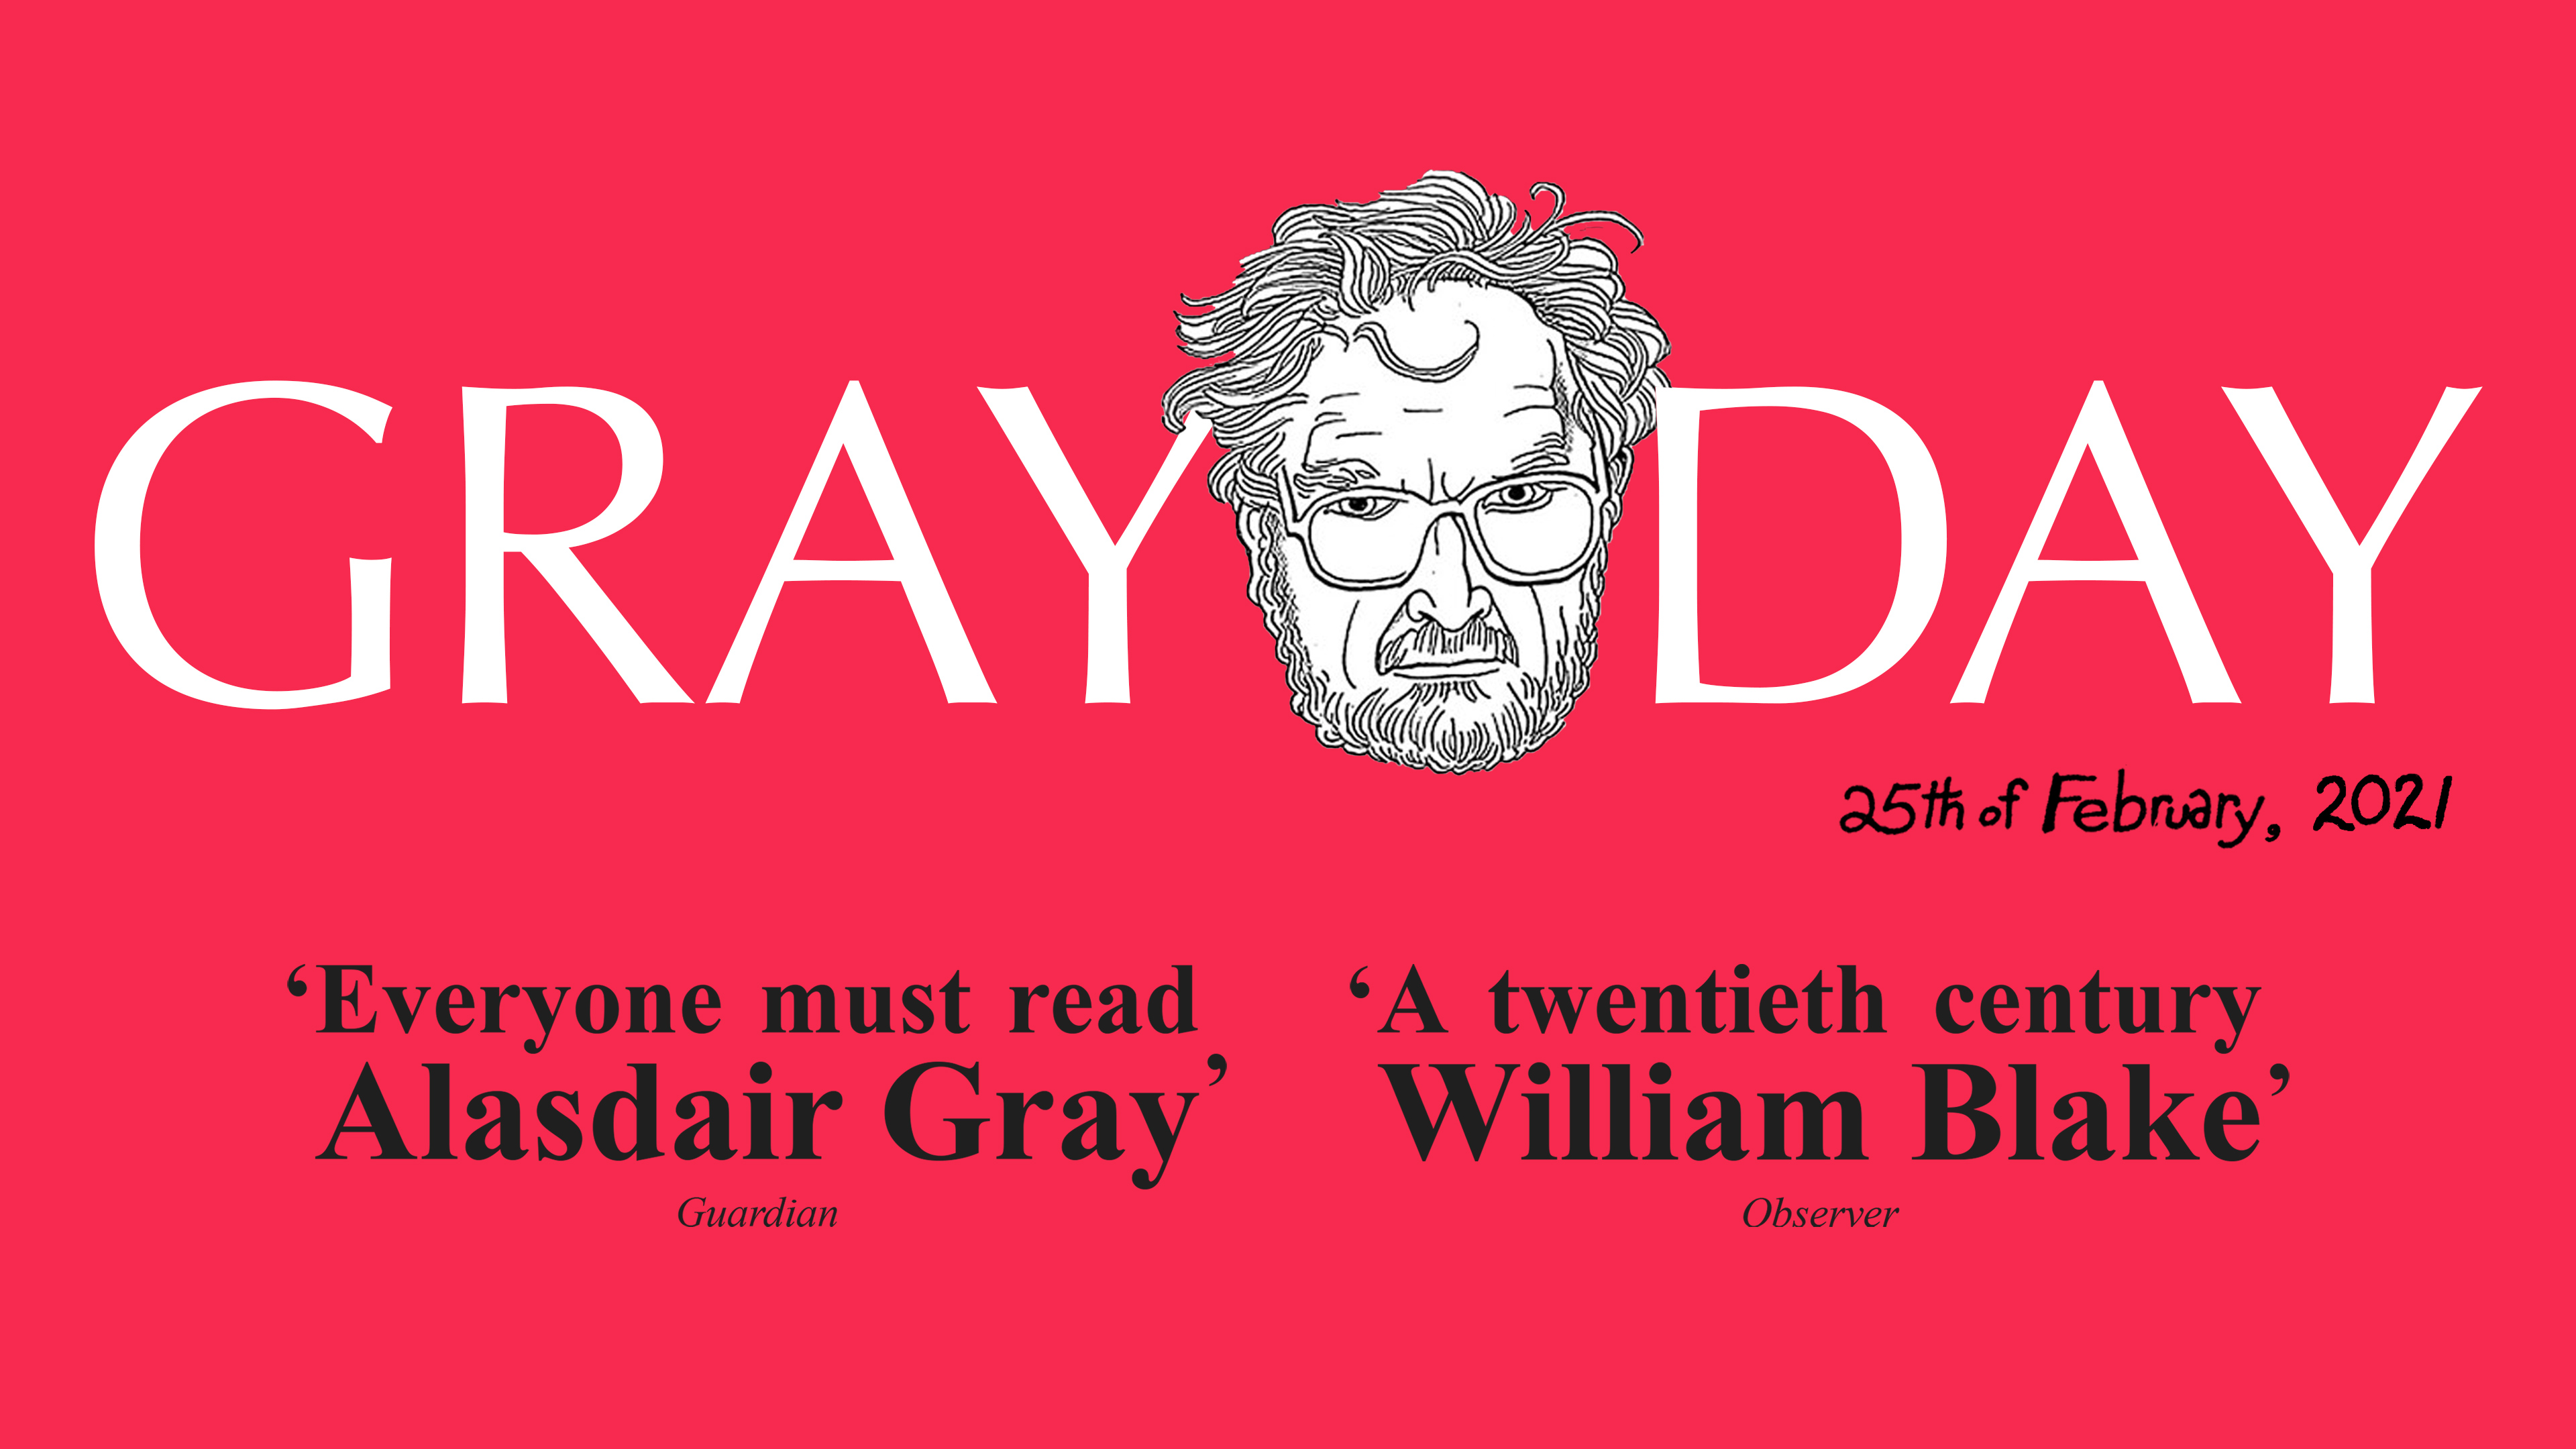 Gray Day – 25th February 2021 (with quotes)